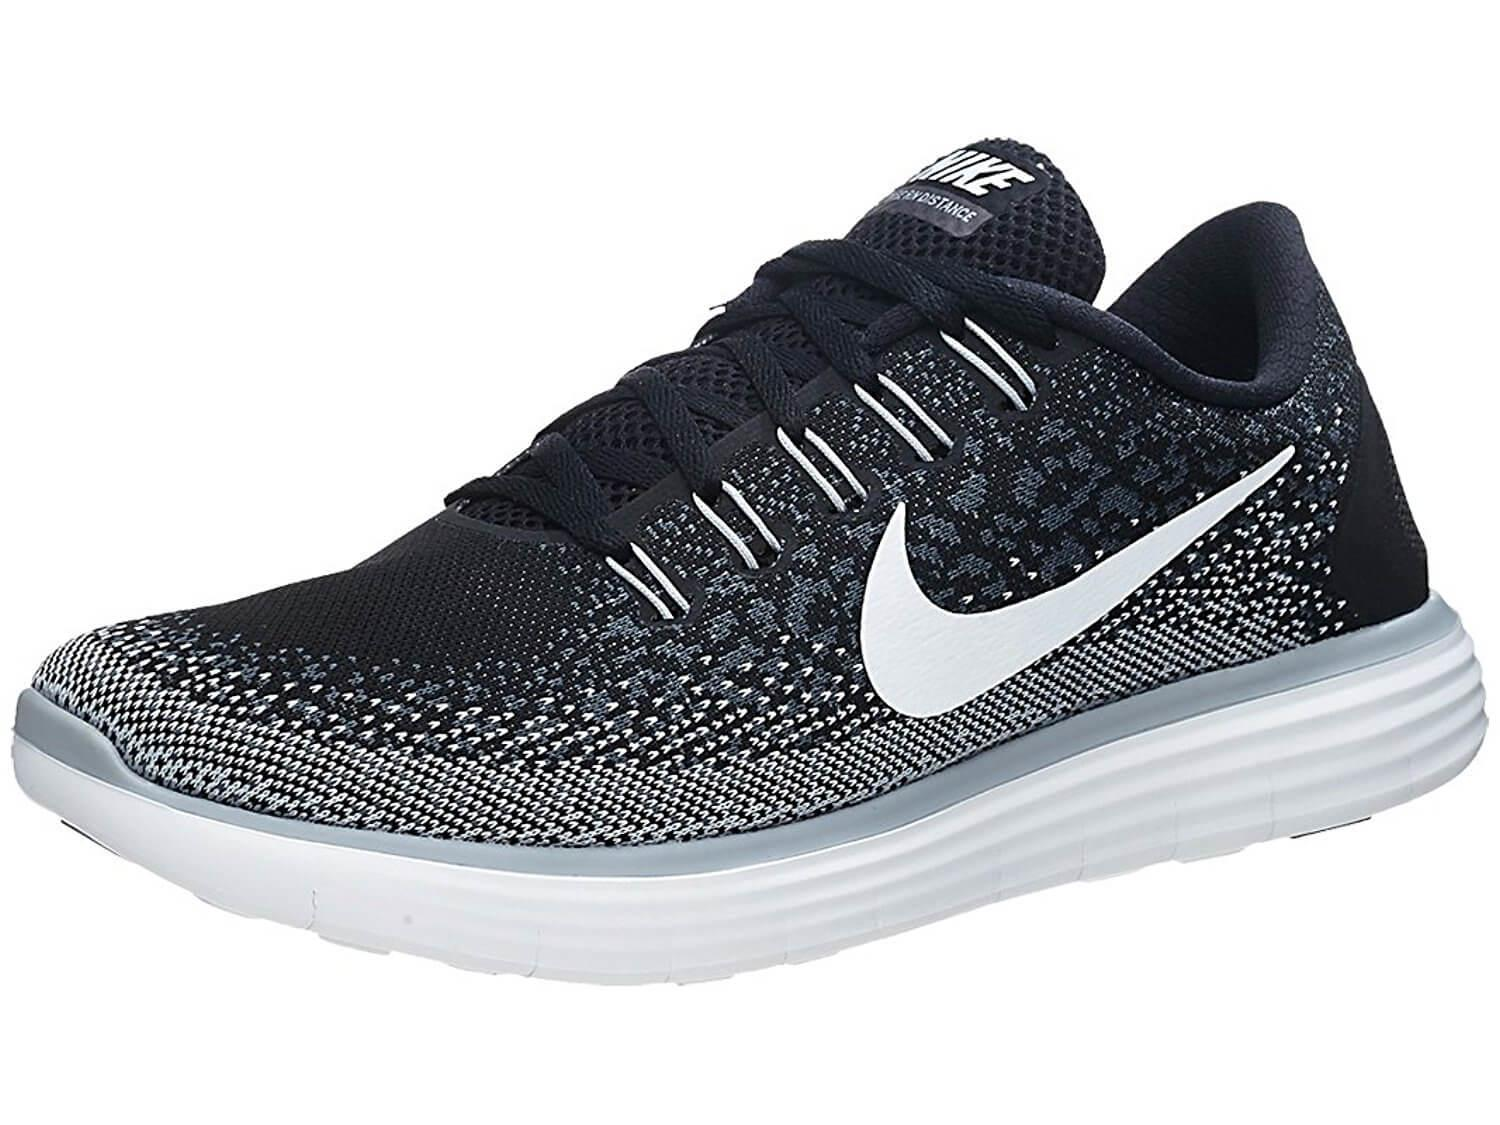 wholesale dealer 89f56 c7318 The Nike Free RN Distance is an excellent all-around running shoe.